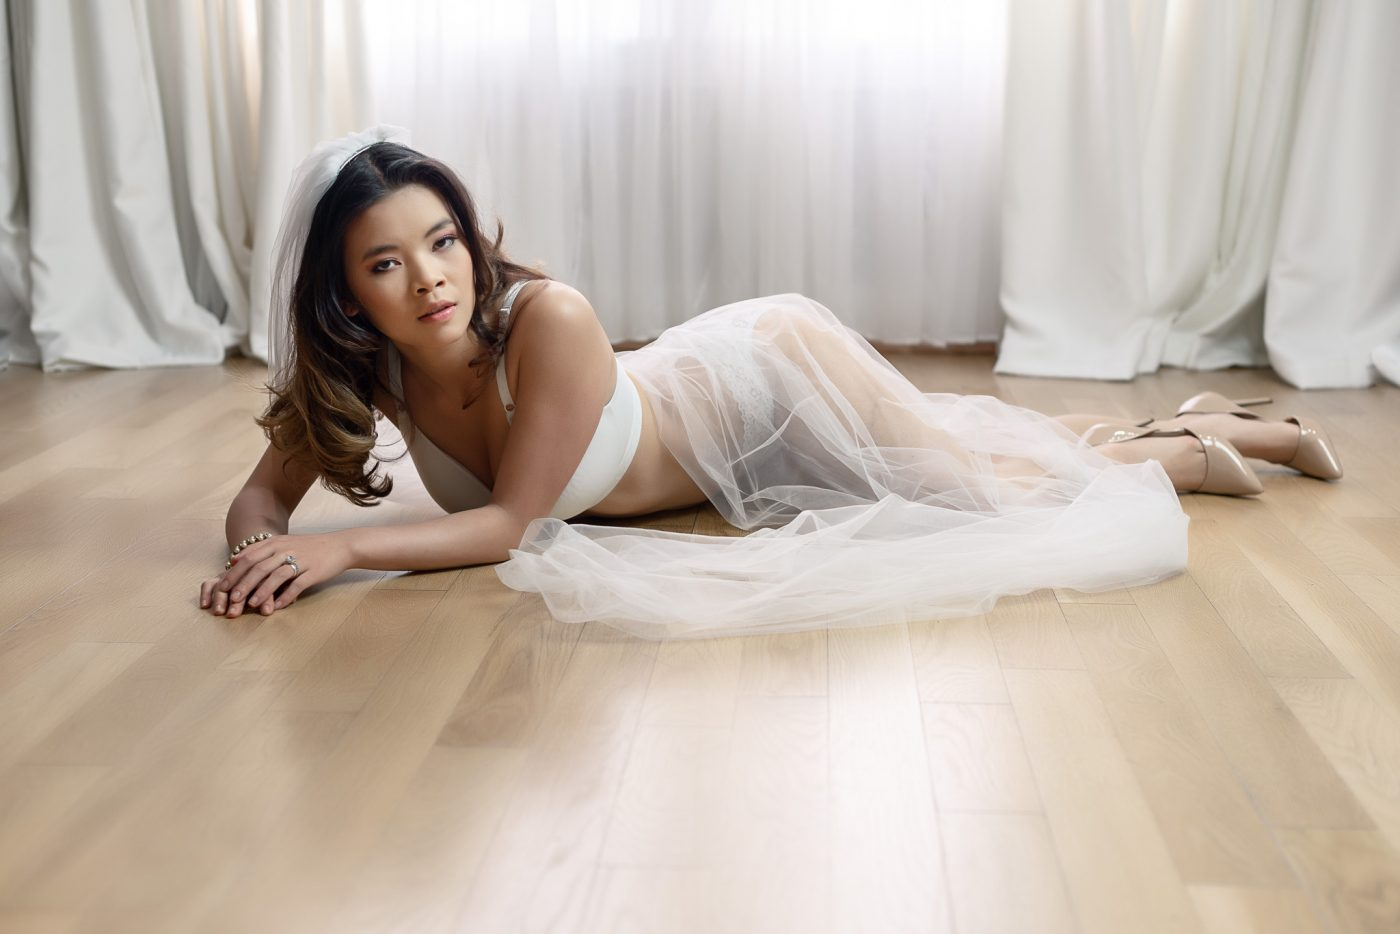 Bridal Boudoir Photos at Houston Heights Boudoir Photography Studio